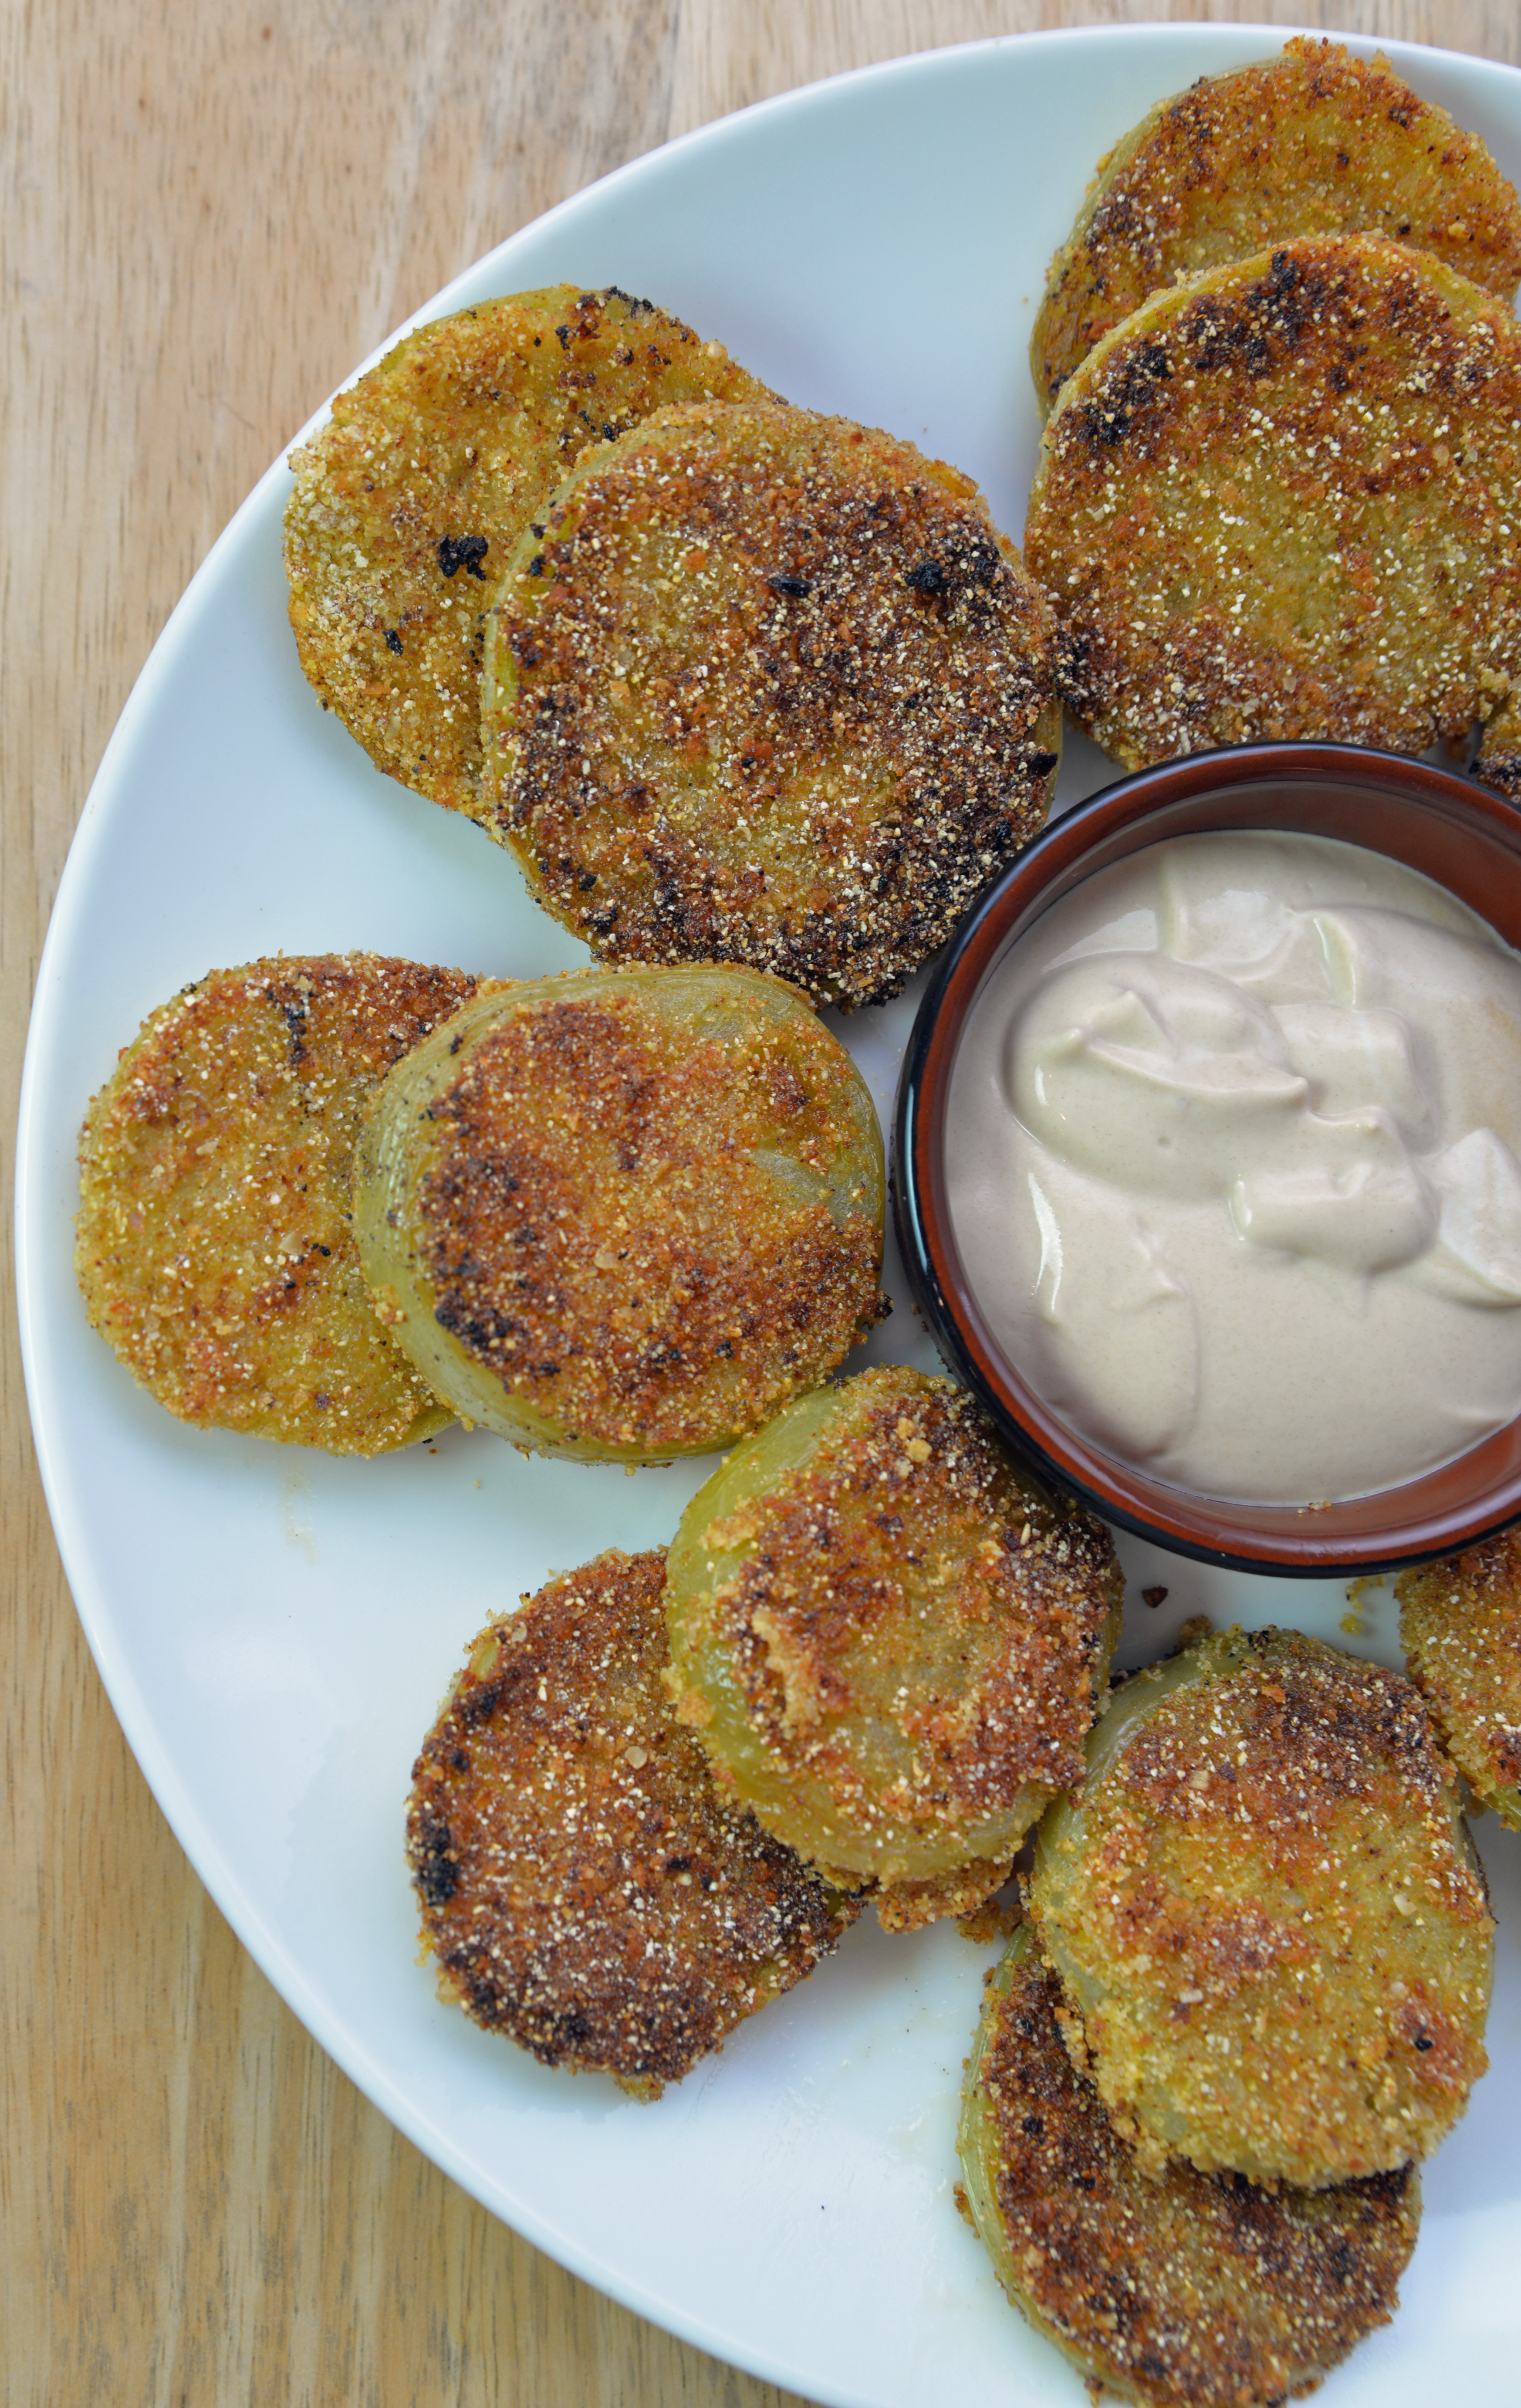 Fried Green Tomatoes with Sweet Dijon Dipping Sauce